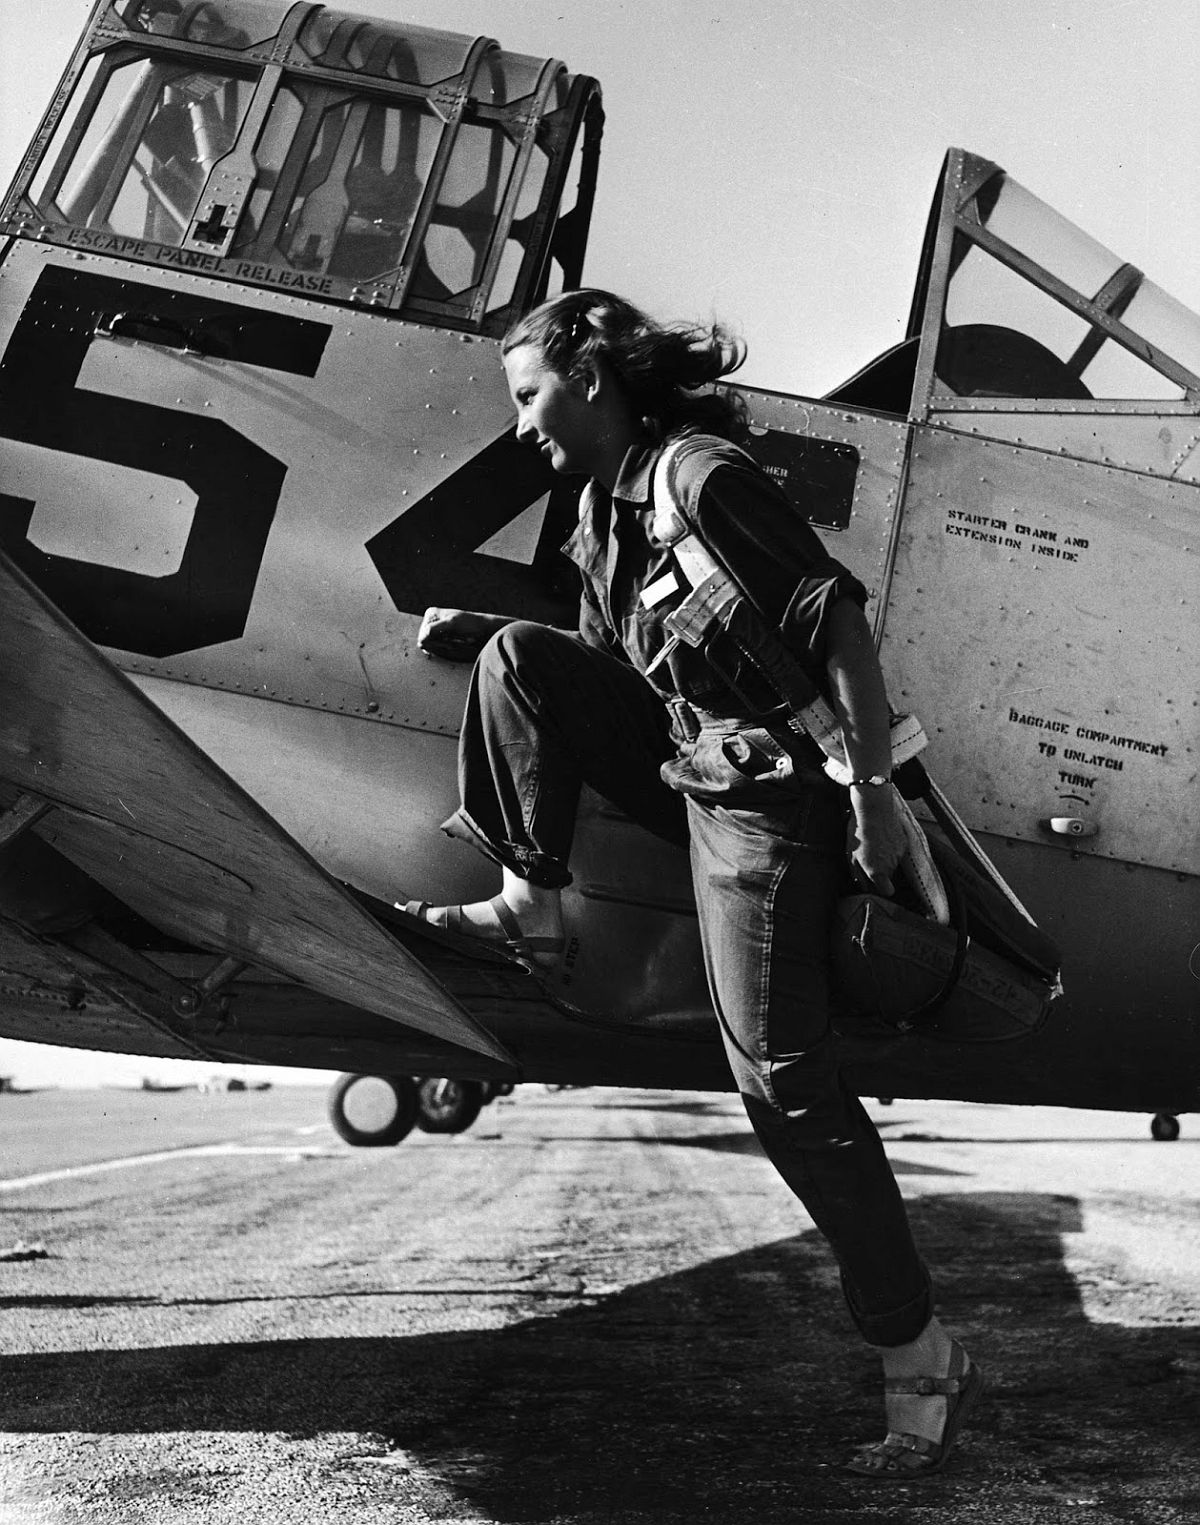 Female pilot of the US Women's Air Force Service posed with her leg up on the wing of an airplane.